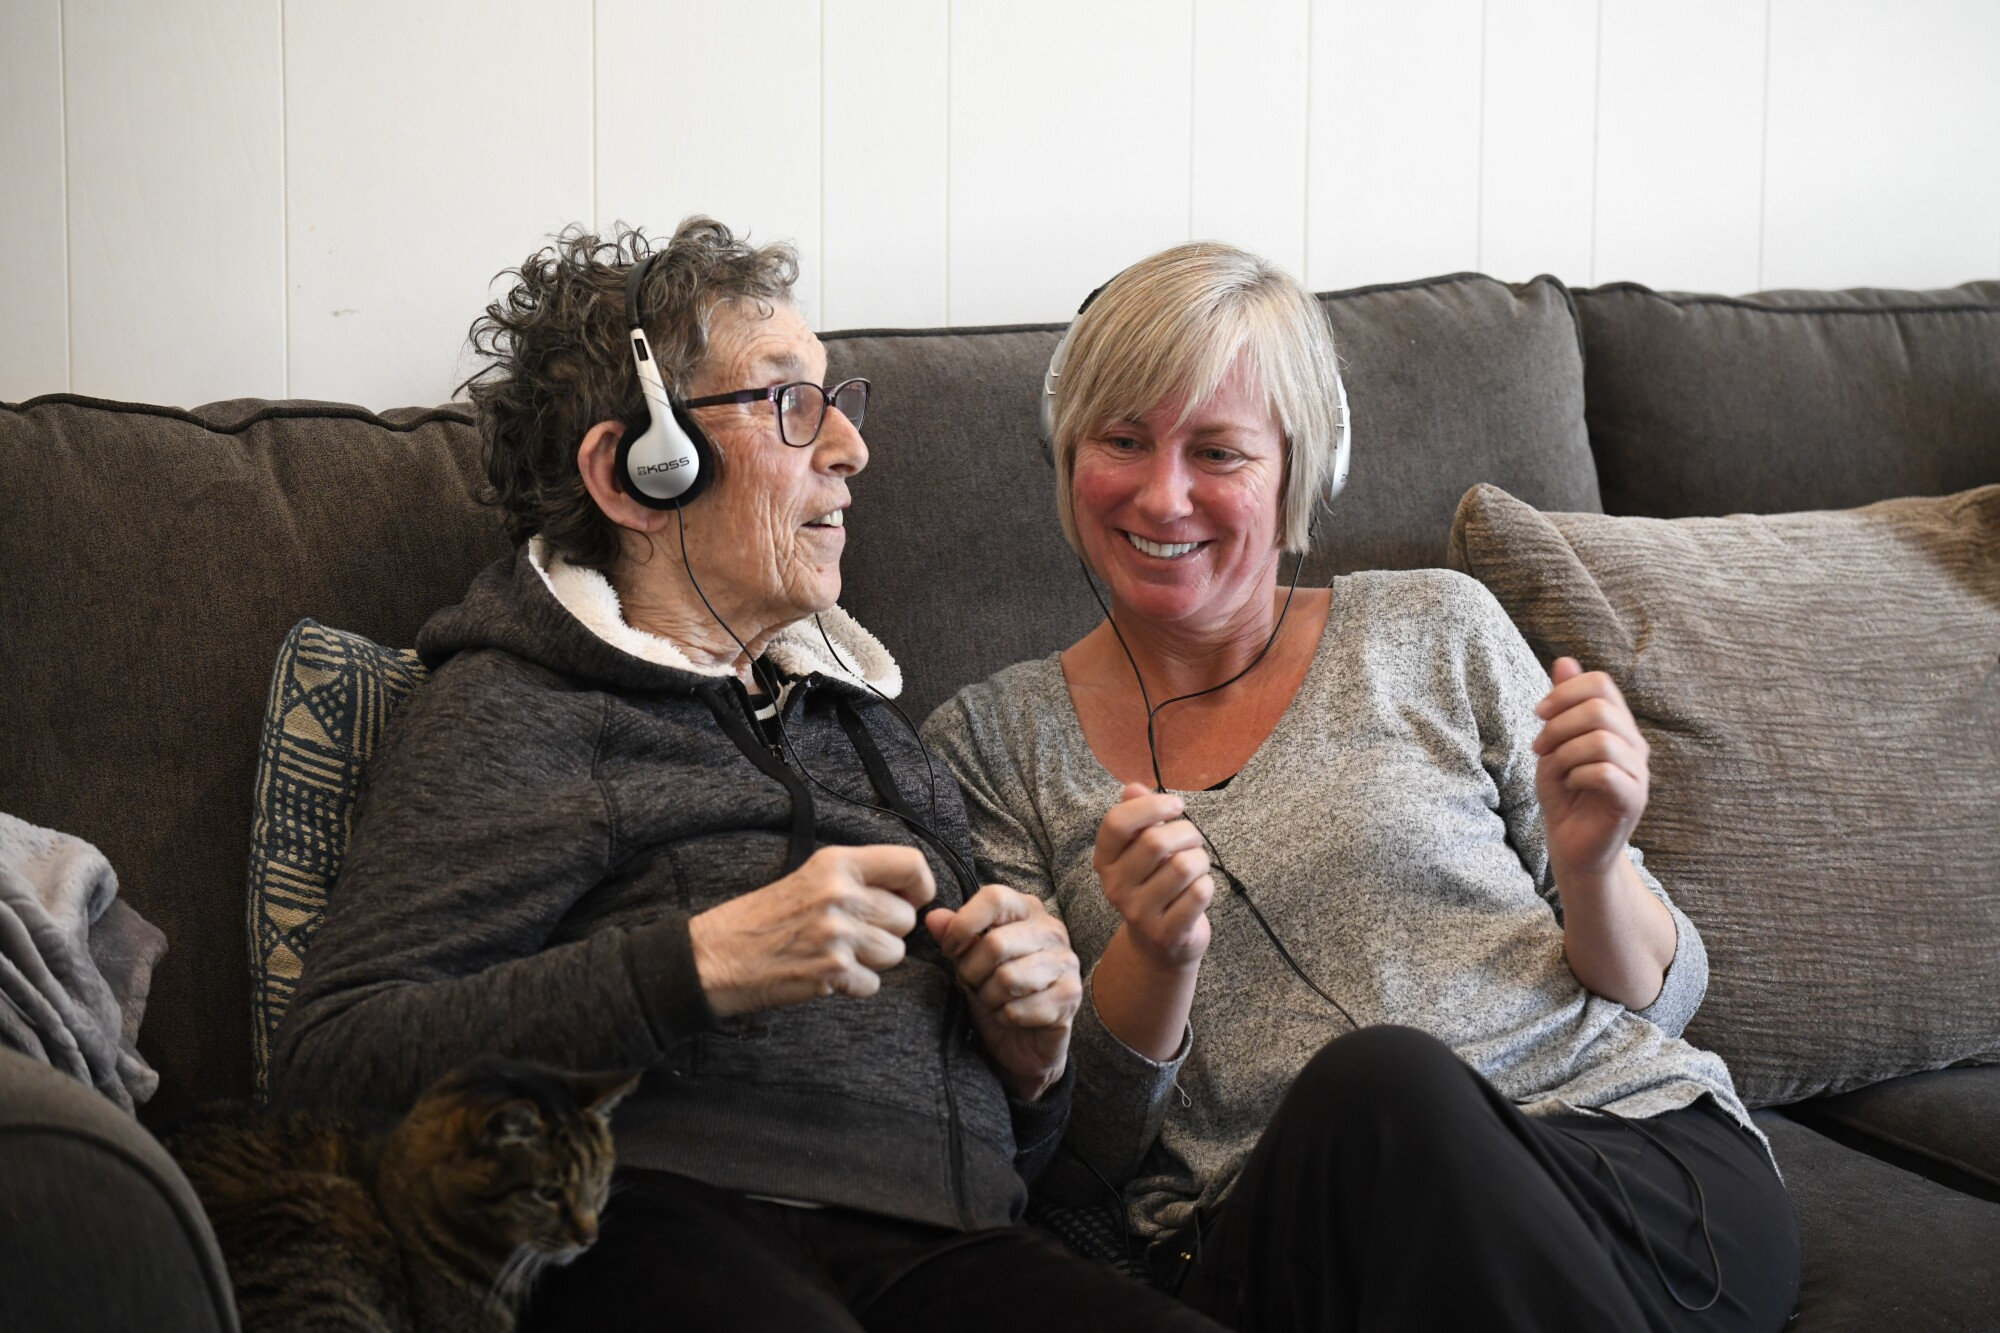 Stacey Skrocki (irght), volunteer with Jewish Family Service, and Gloria Wasserman move to the music as they do in-home Music & Memory therapy.